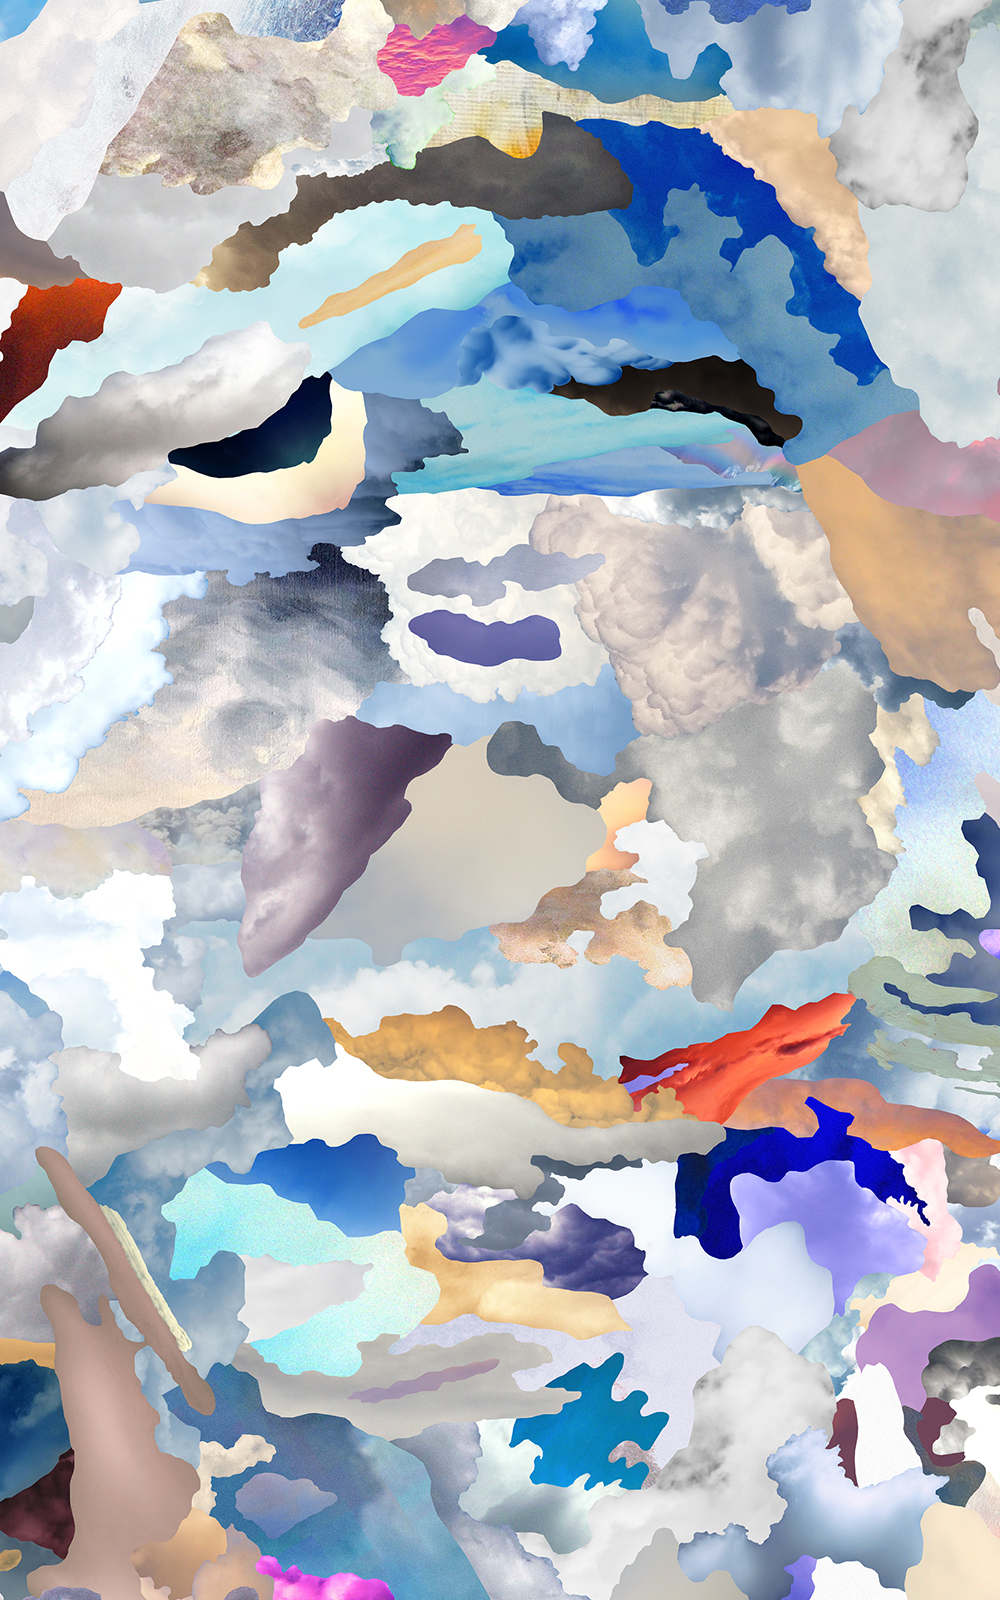 Case Simmons, Simmons & Burke, Horizontal Clouds, Cloud Collage, Pigment Print, Digital Collage, Digital Art, Photoshop Collage, Contemporary Collage, Case Simmons Art, Collage Fine Art, Abstract Digital Collage